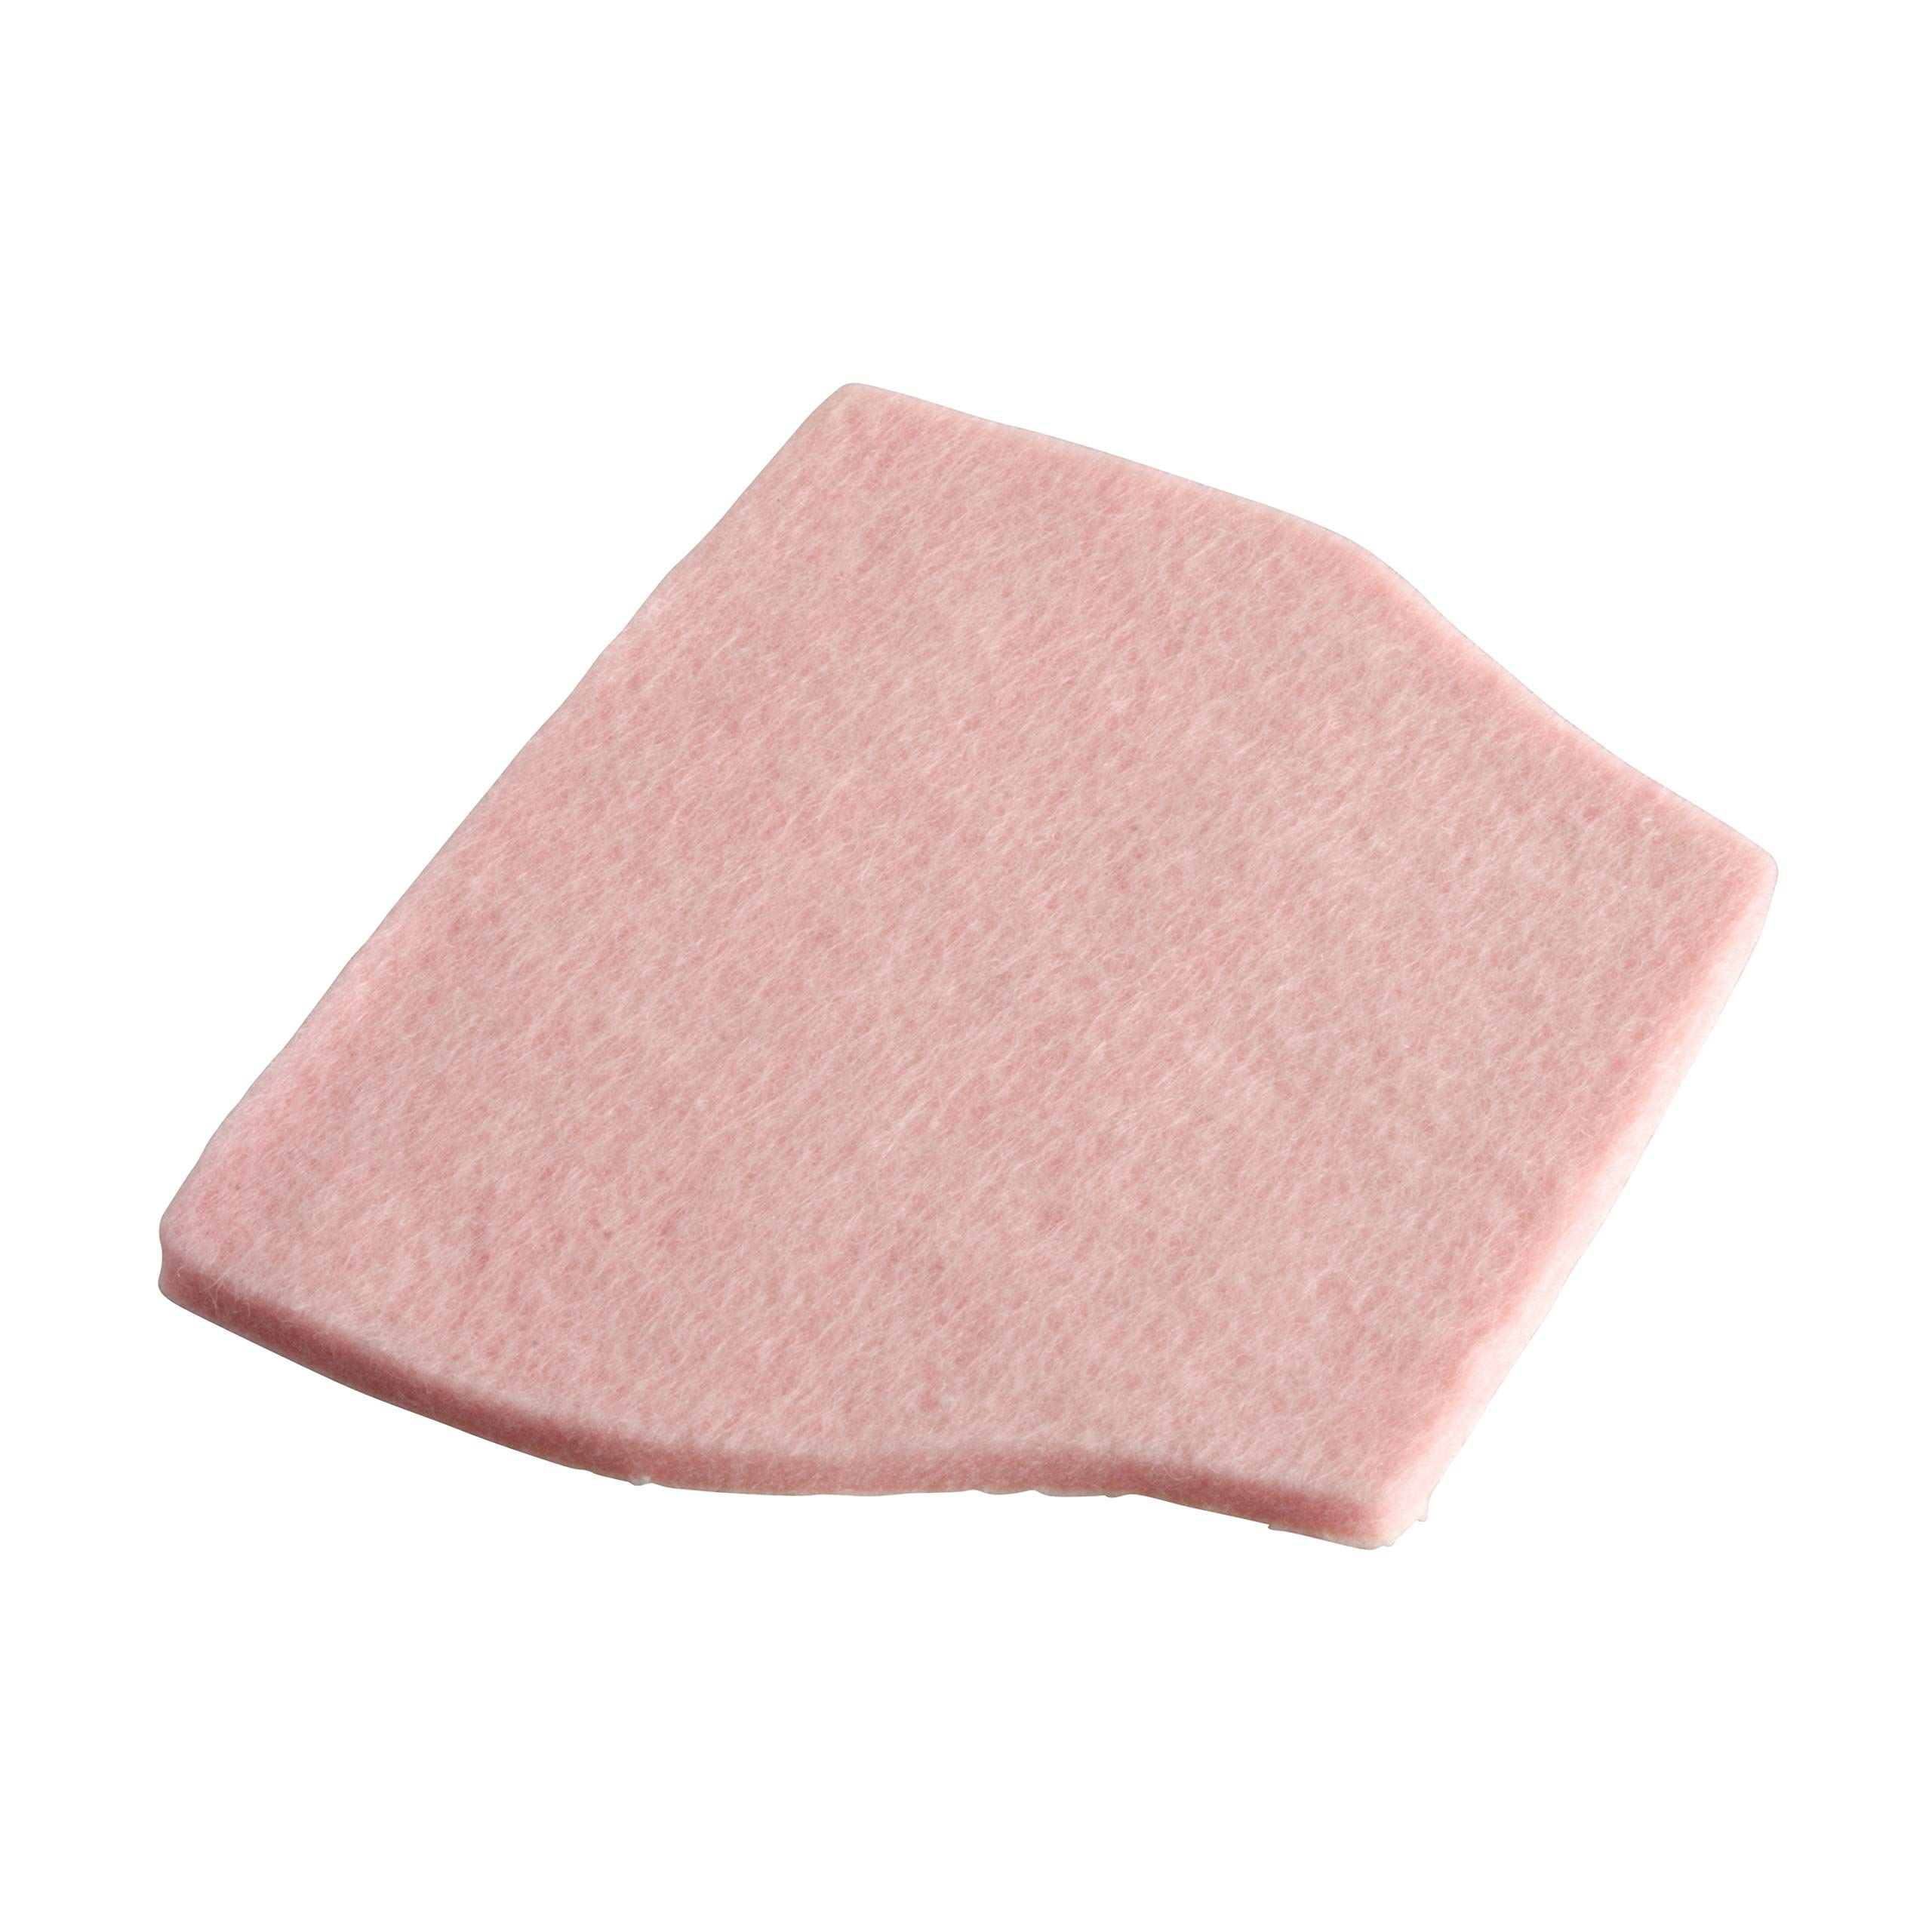 Steins 1/8 Inch Adhesive Felt Pre-Cut Arnold Pads, 100 Count